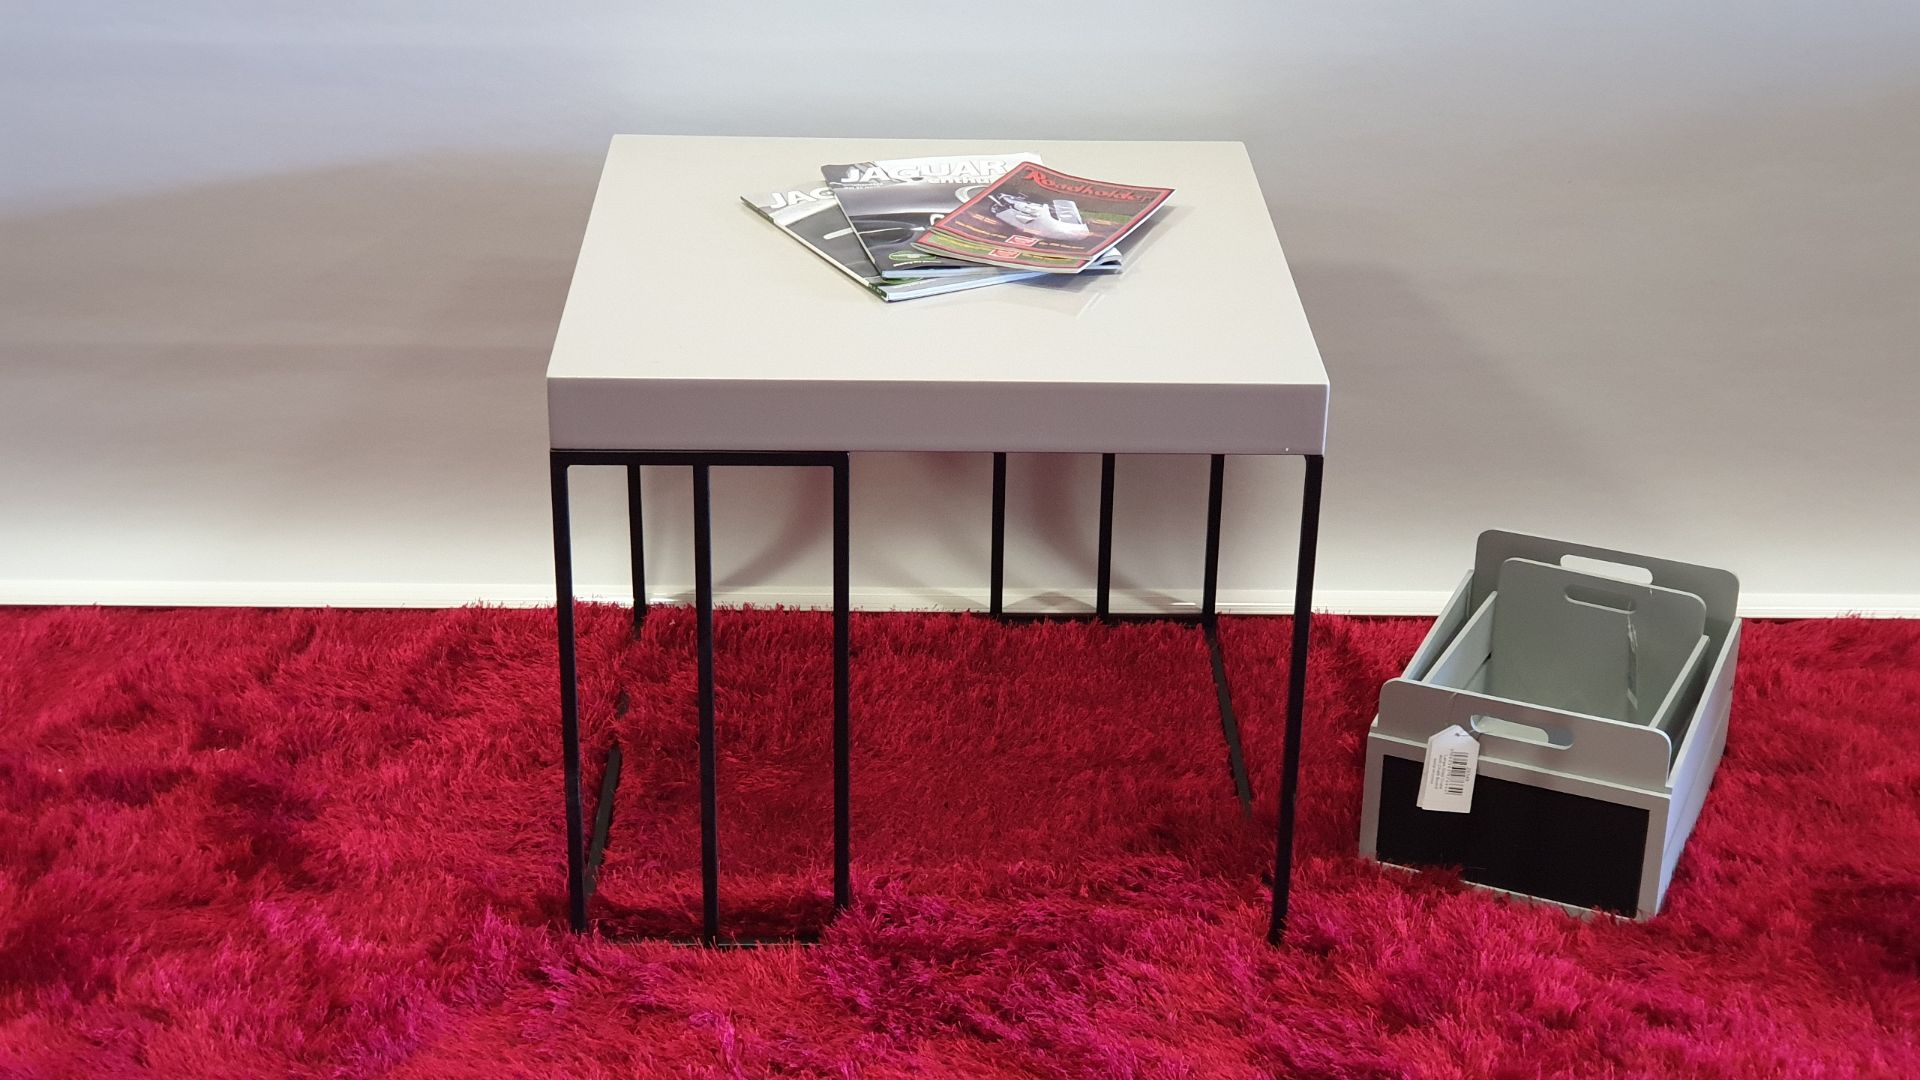 Lot 21 - BRAND NEW HIGH GLOSS AVORIO MDF TABLE 590 X 590 X 500MM RRP £99